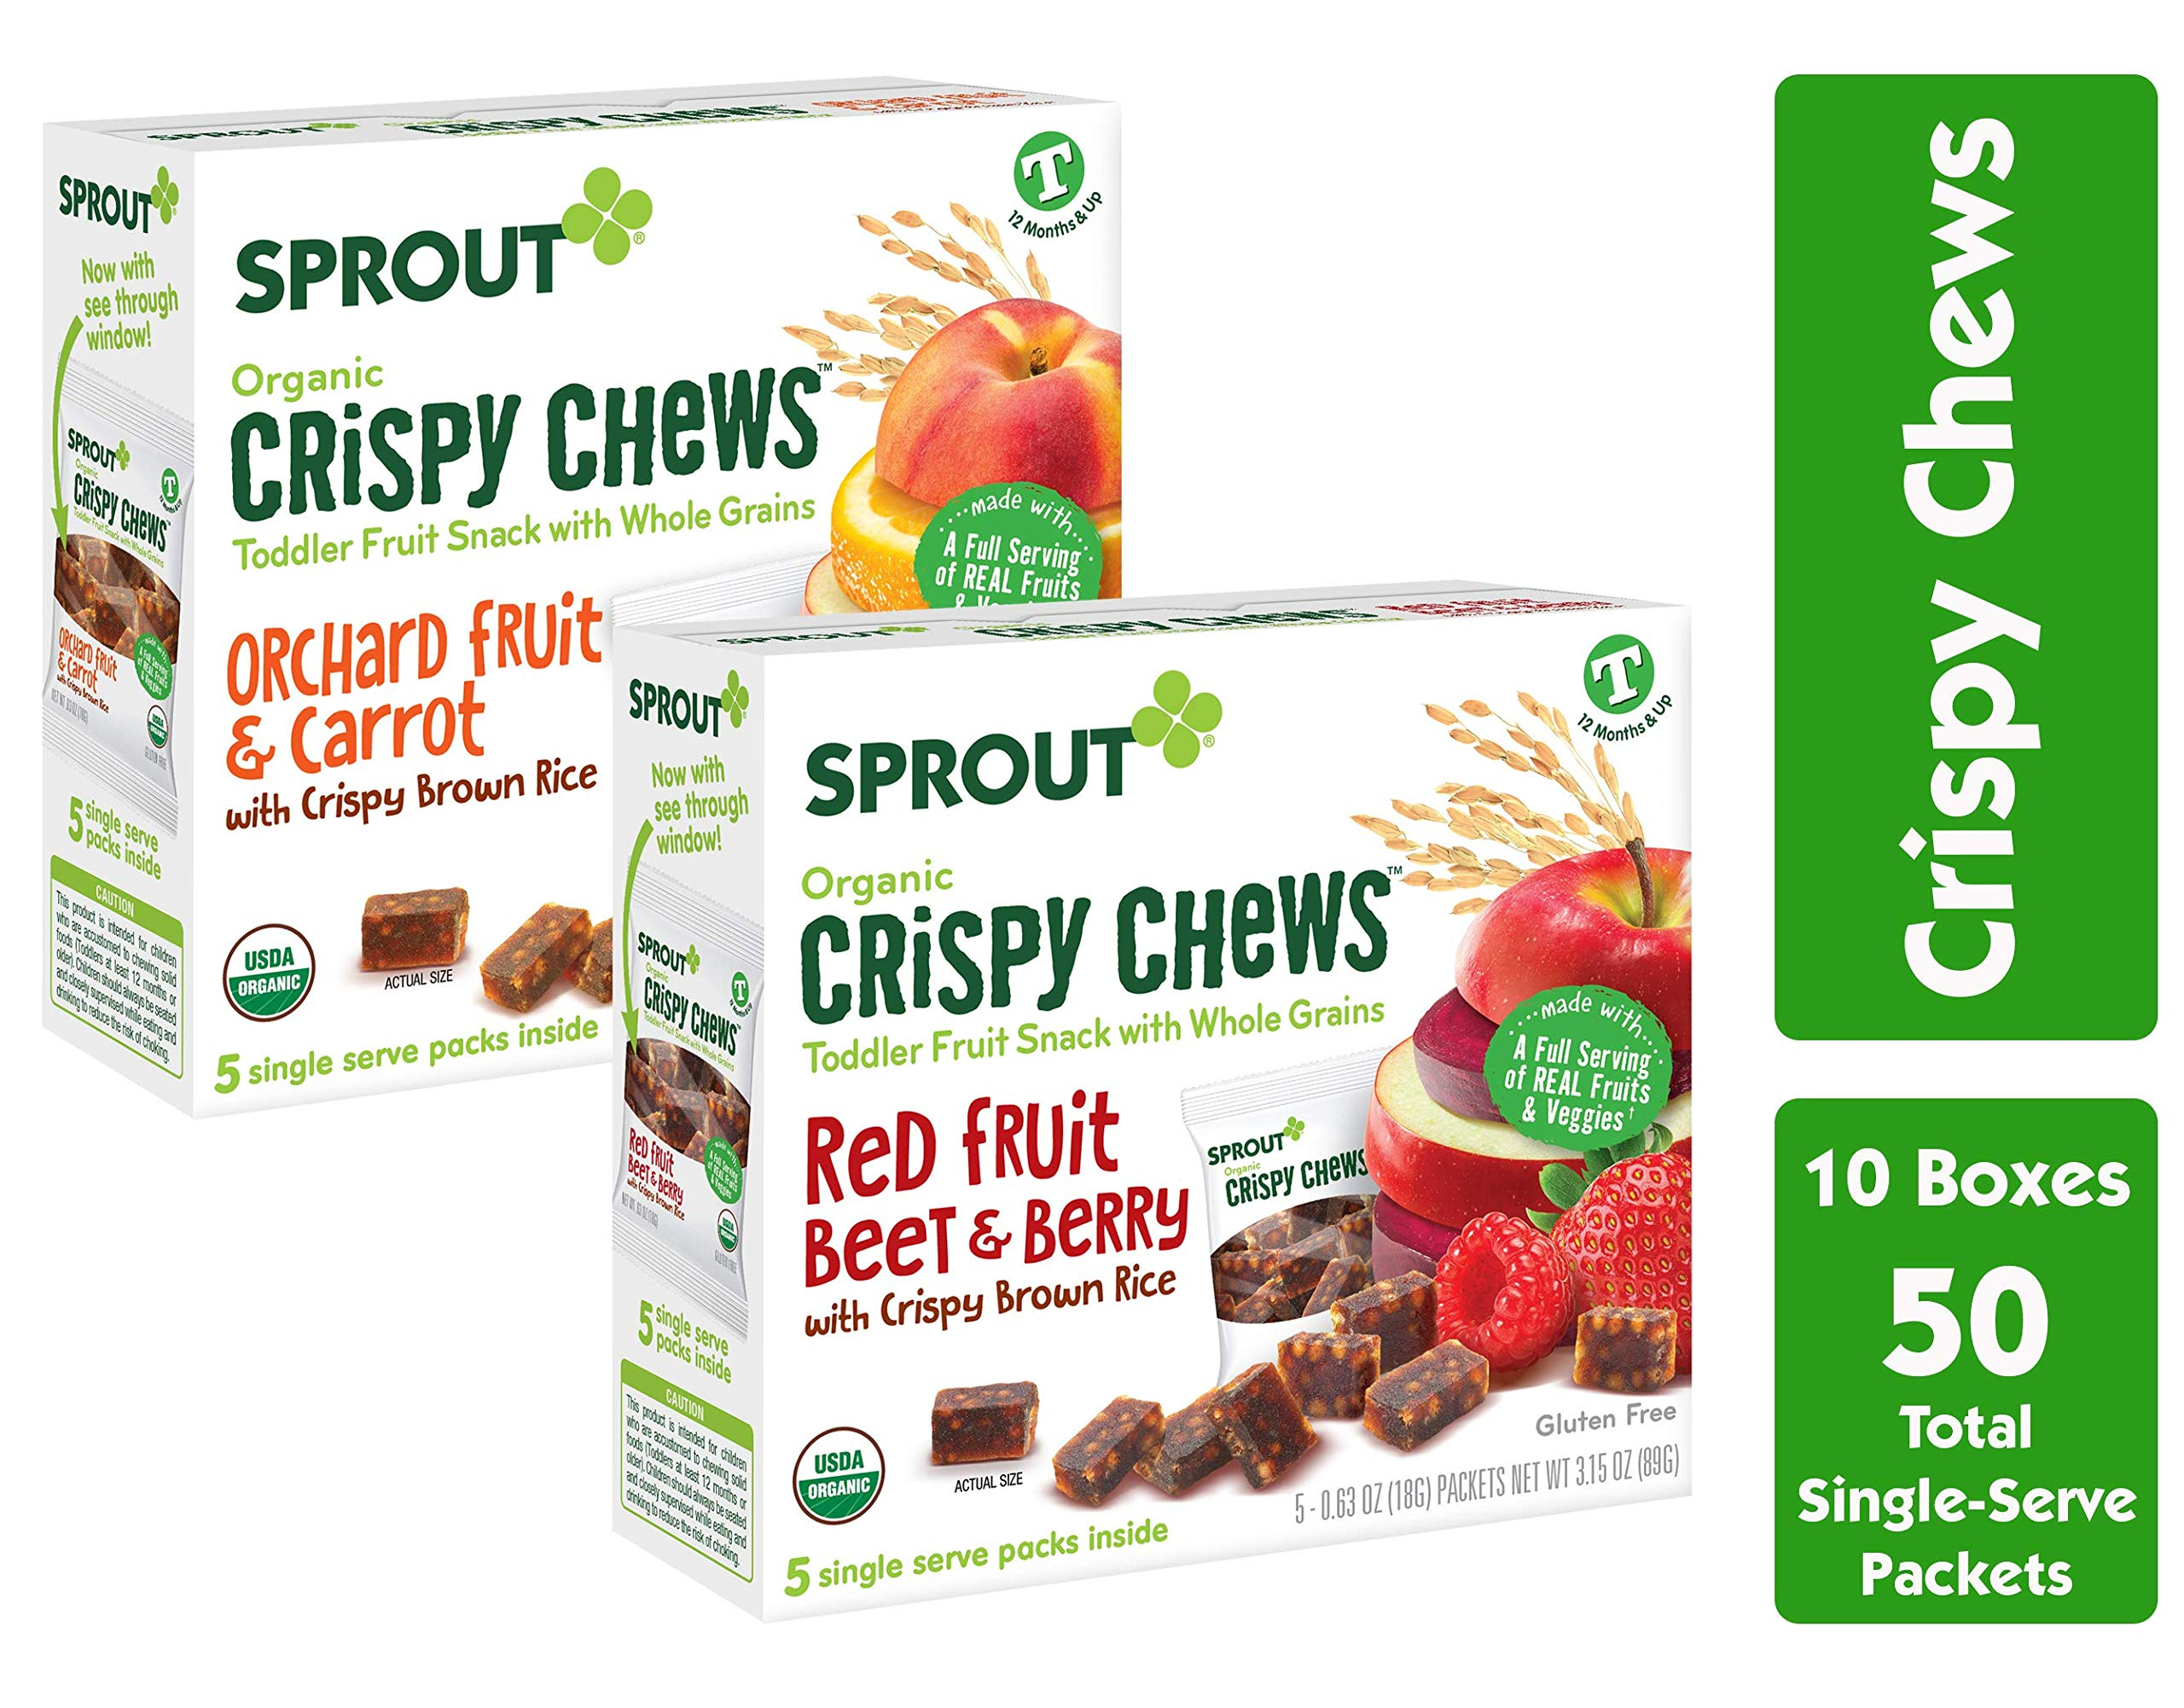 Sprout Organic Crispy Chews Toddler Snacks, Variety Pack, 5 Count boxes of 0.63 Ounce Single Serve Packets (Pack of 10 Boxes) 5 Boxes Each: Red Berry & Beet and Orchard Fruit & Carrot by Sprout